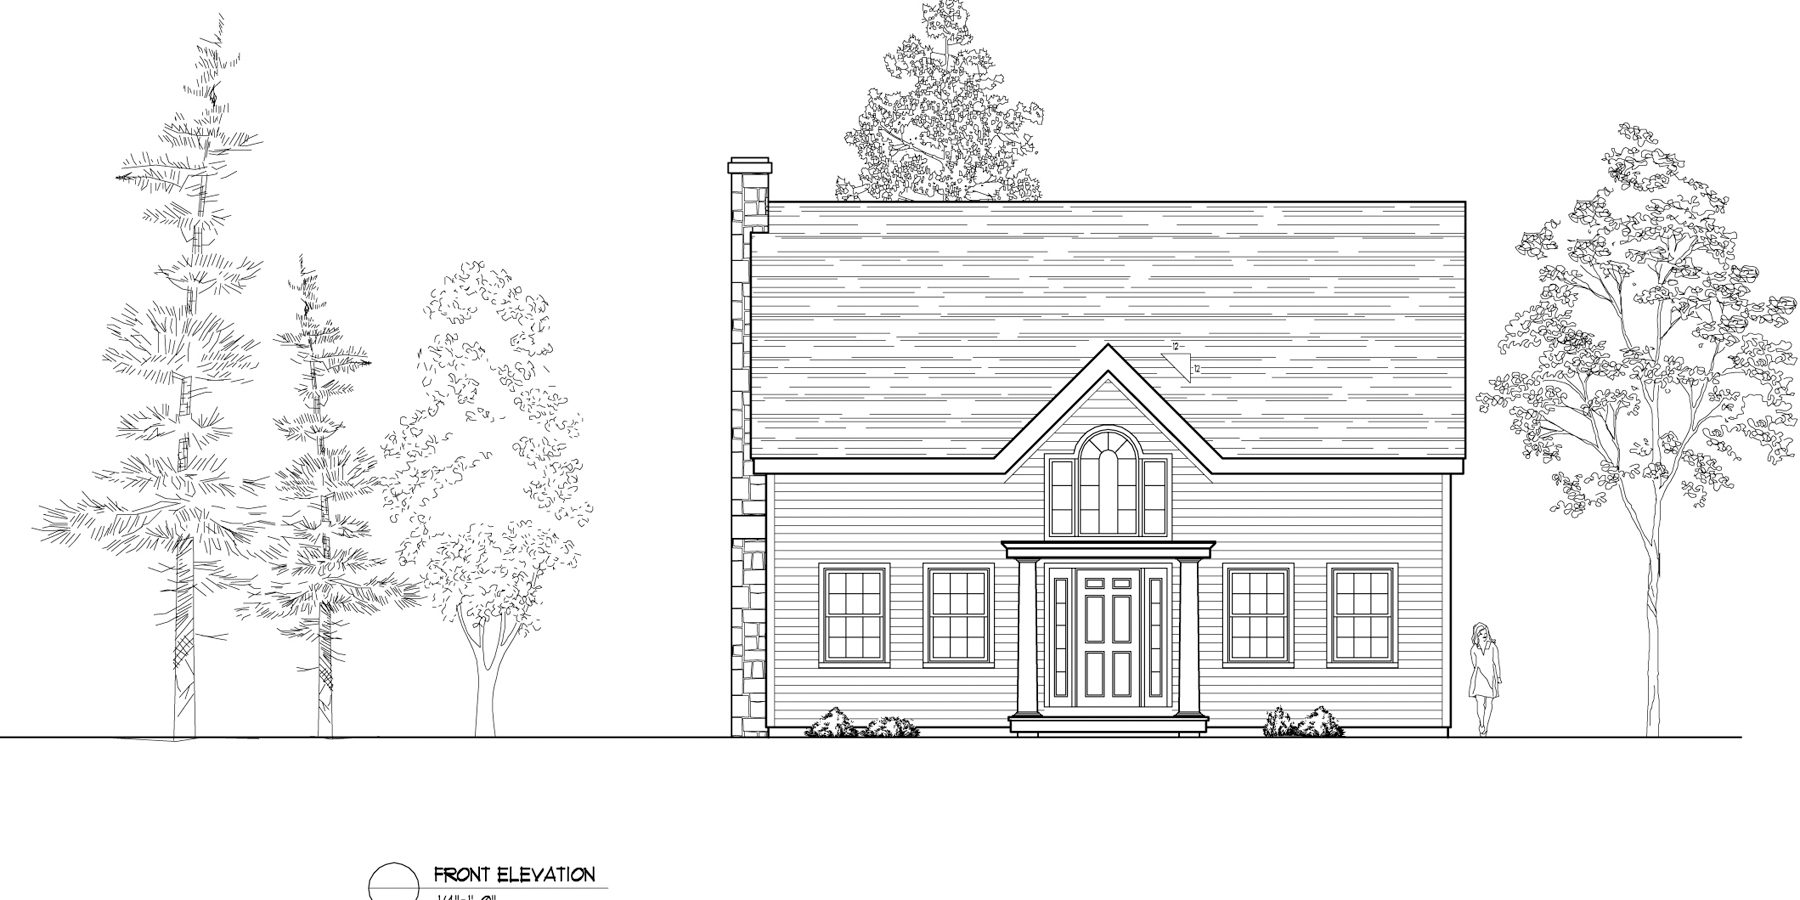 Normerica Timber Frames, House Plan, The Niagara 3539, Front Elevation